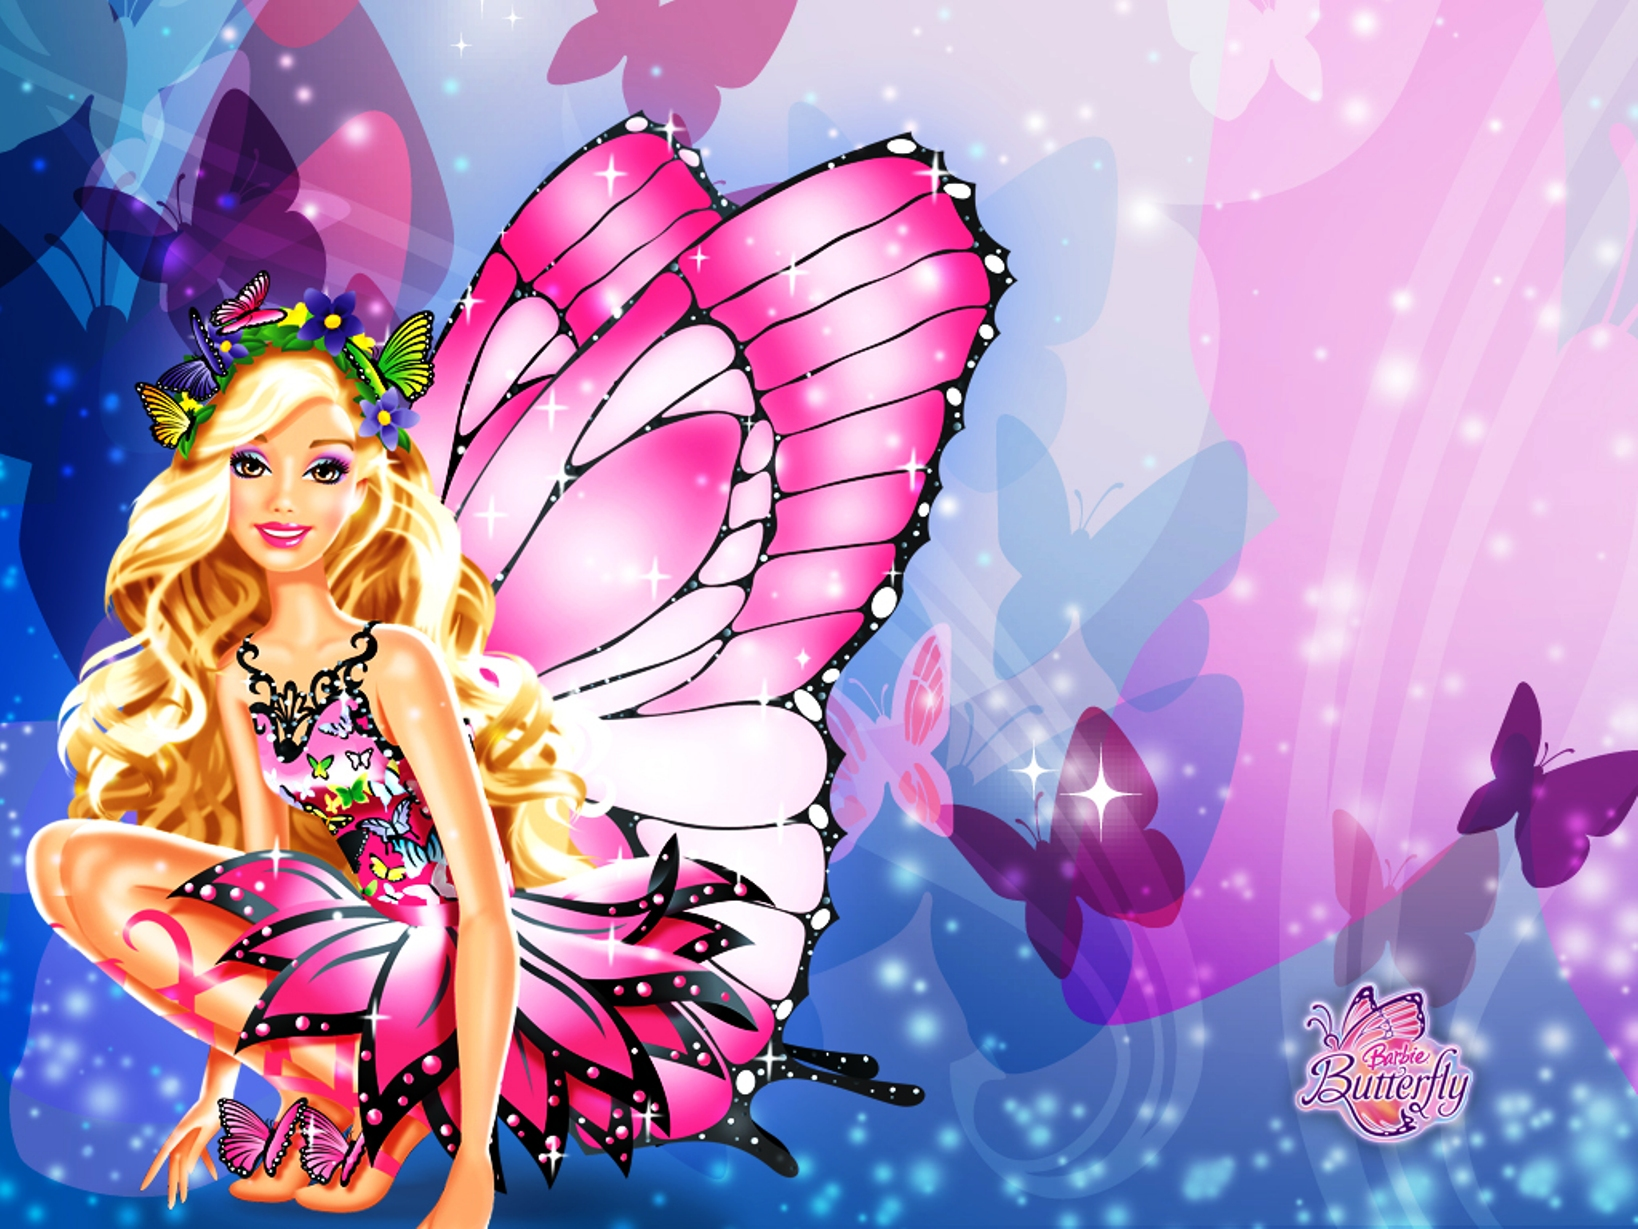 Barbie Butterfly Picture - Barbie Butterfly Picture